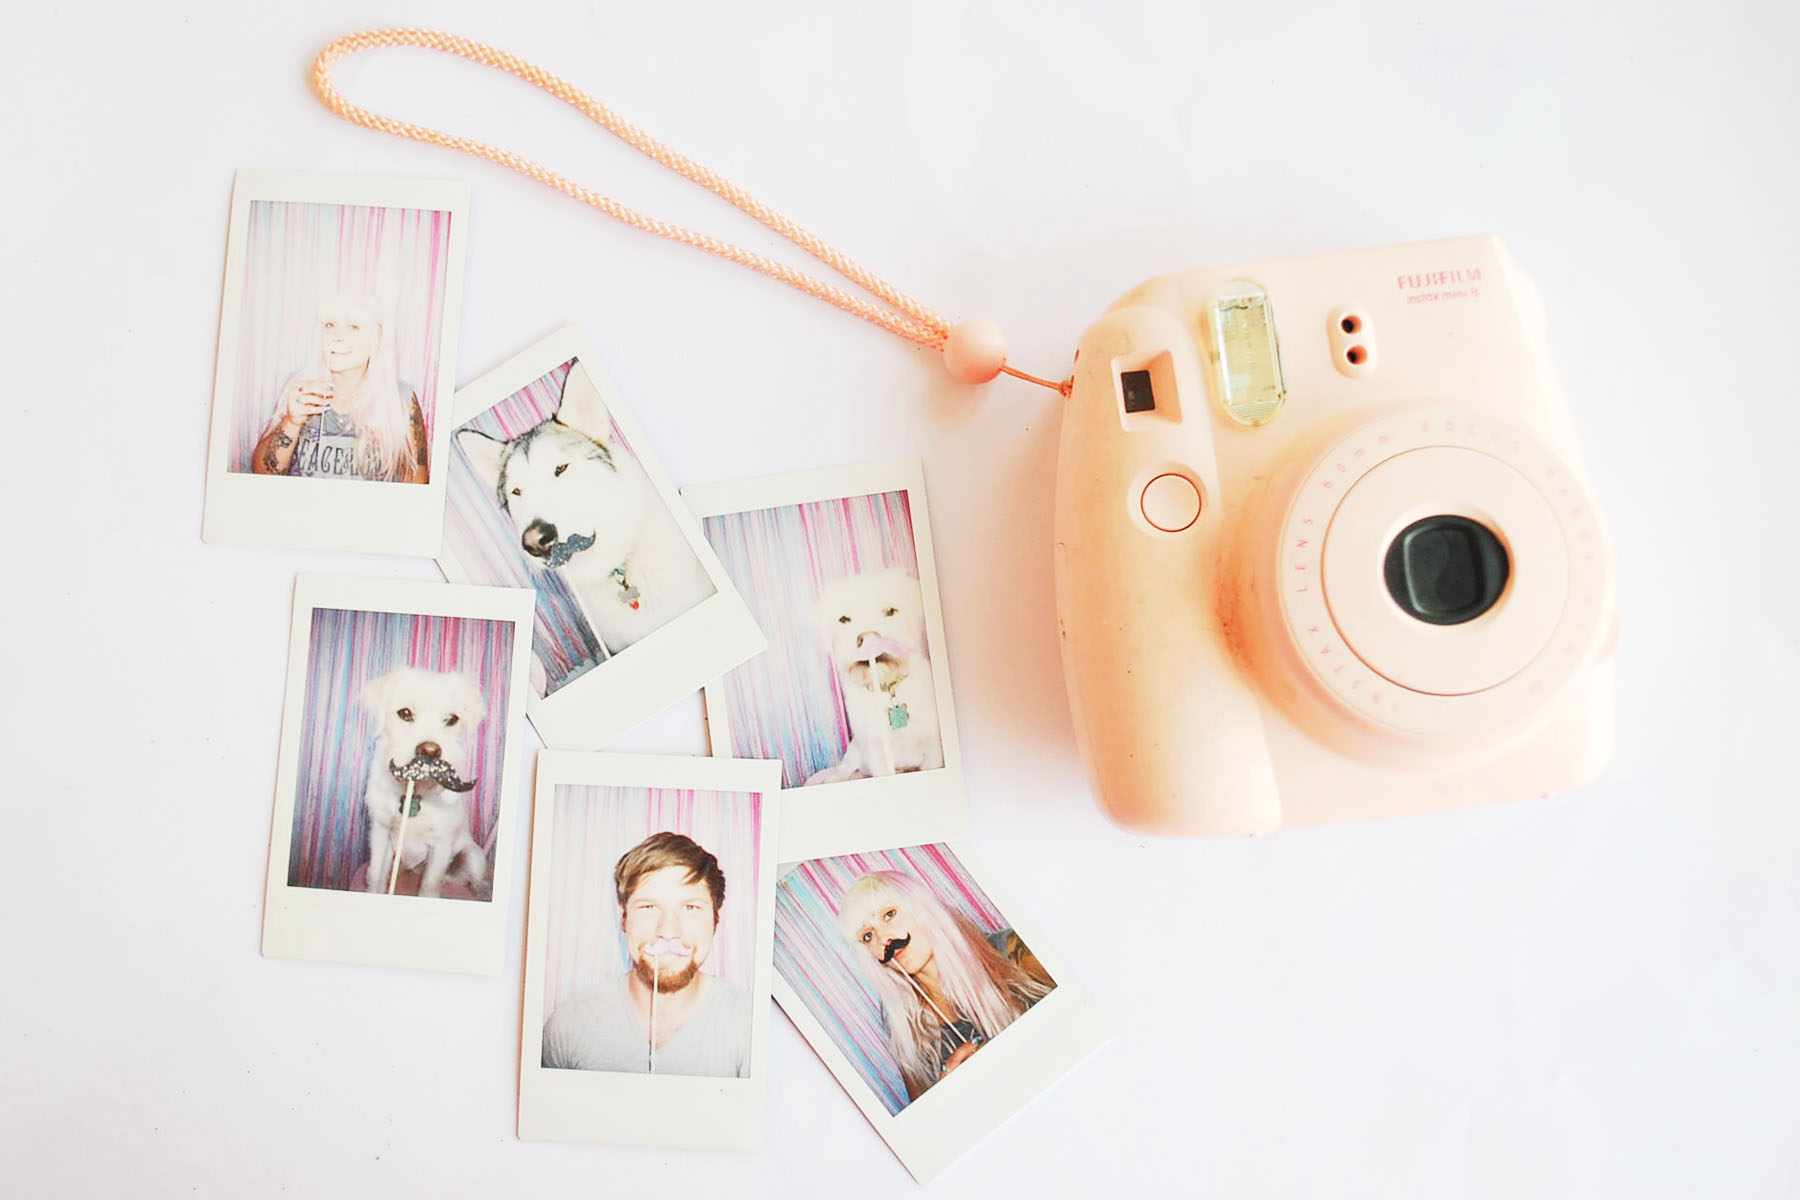 Fishee Designs Photo Booth - How to Create a Fun and Easy DIY Photo Booth16